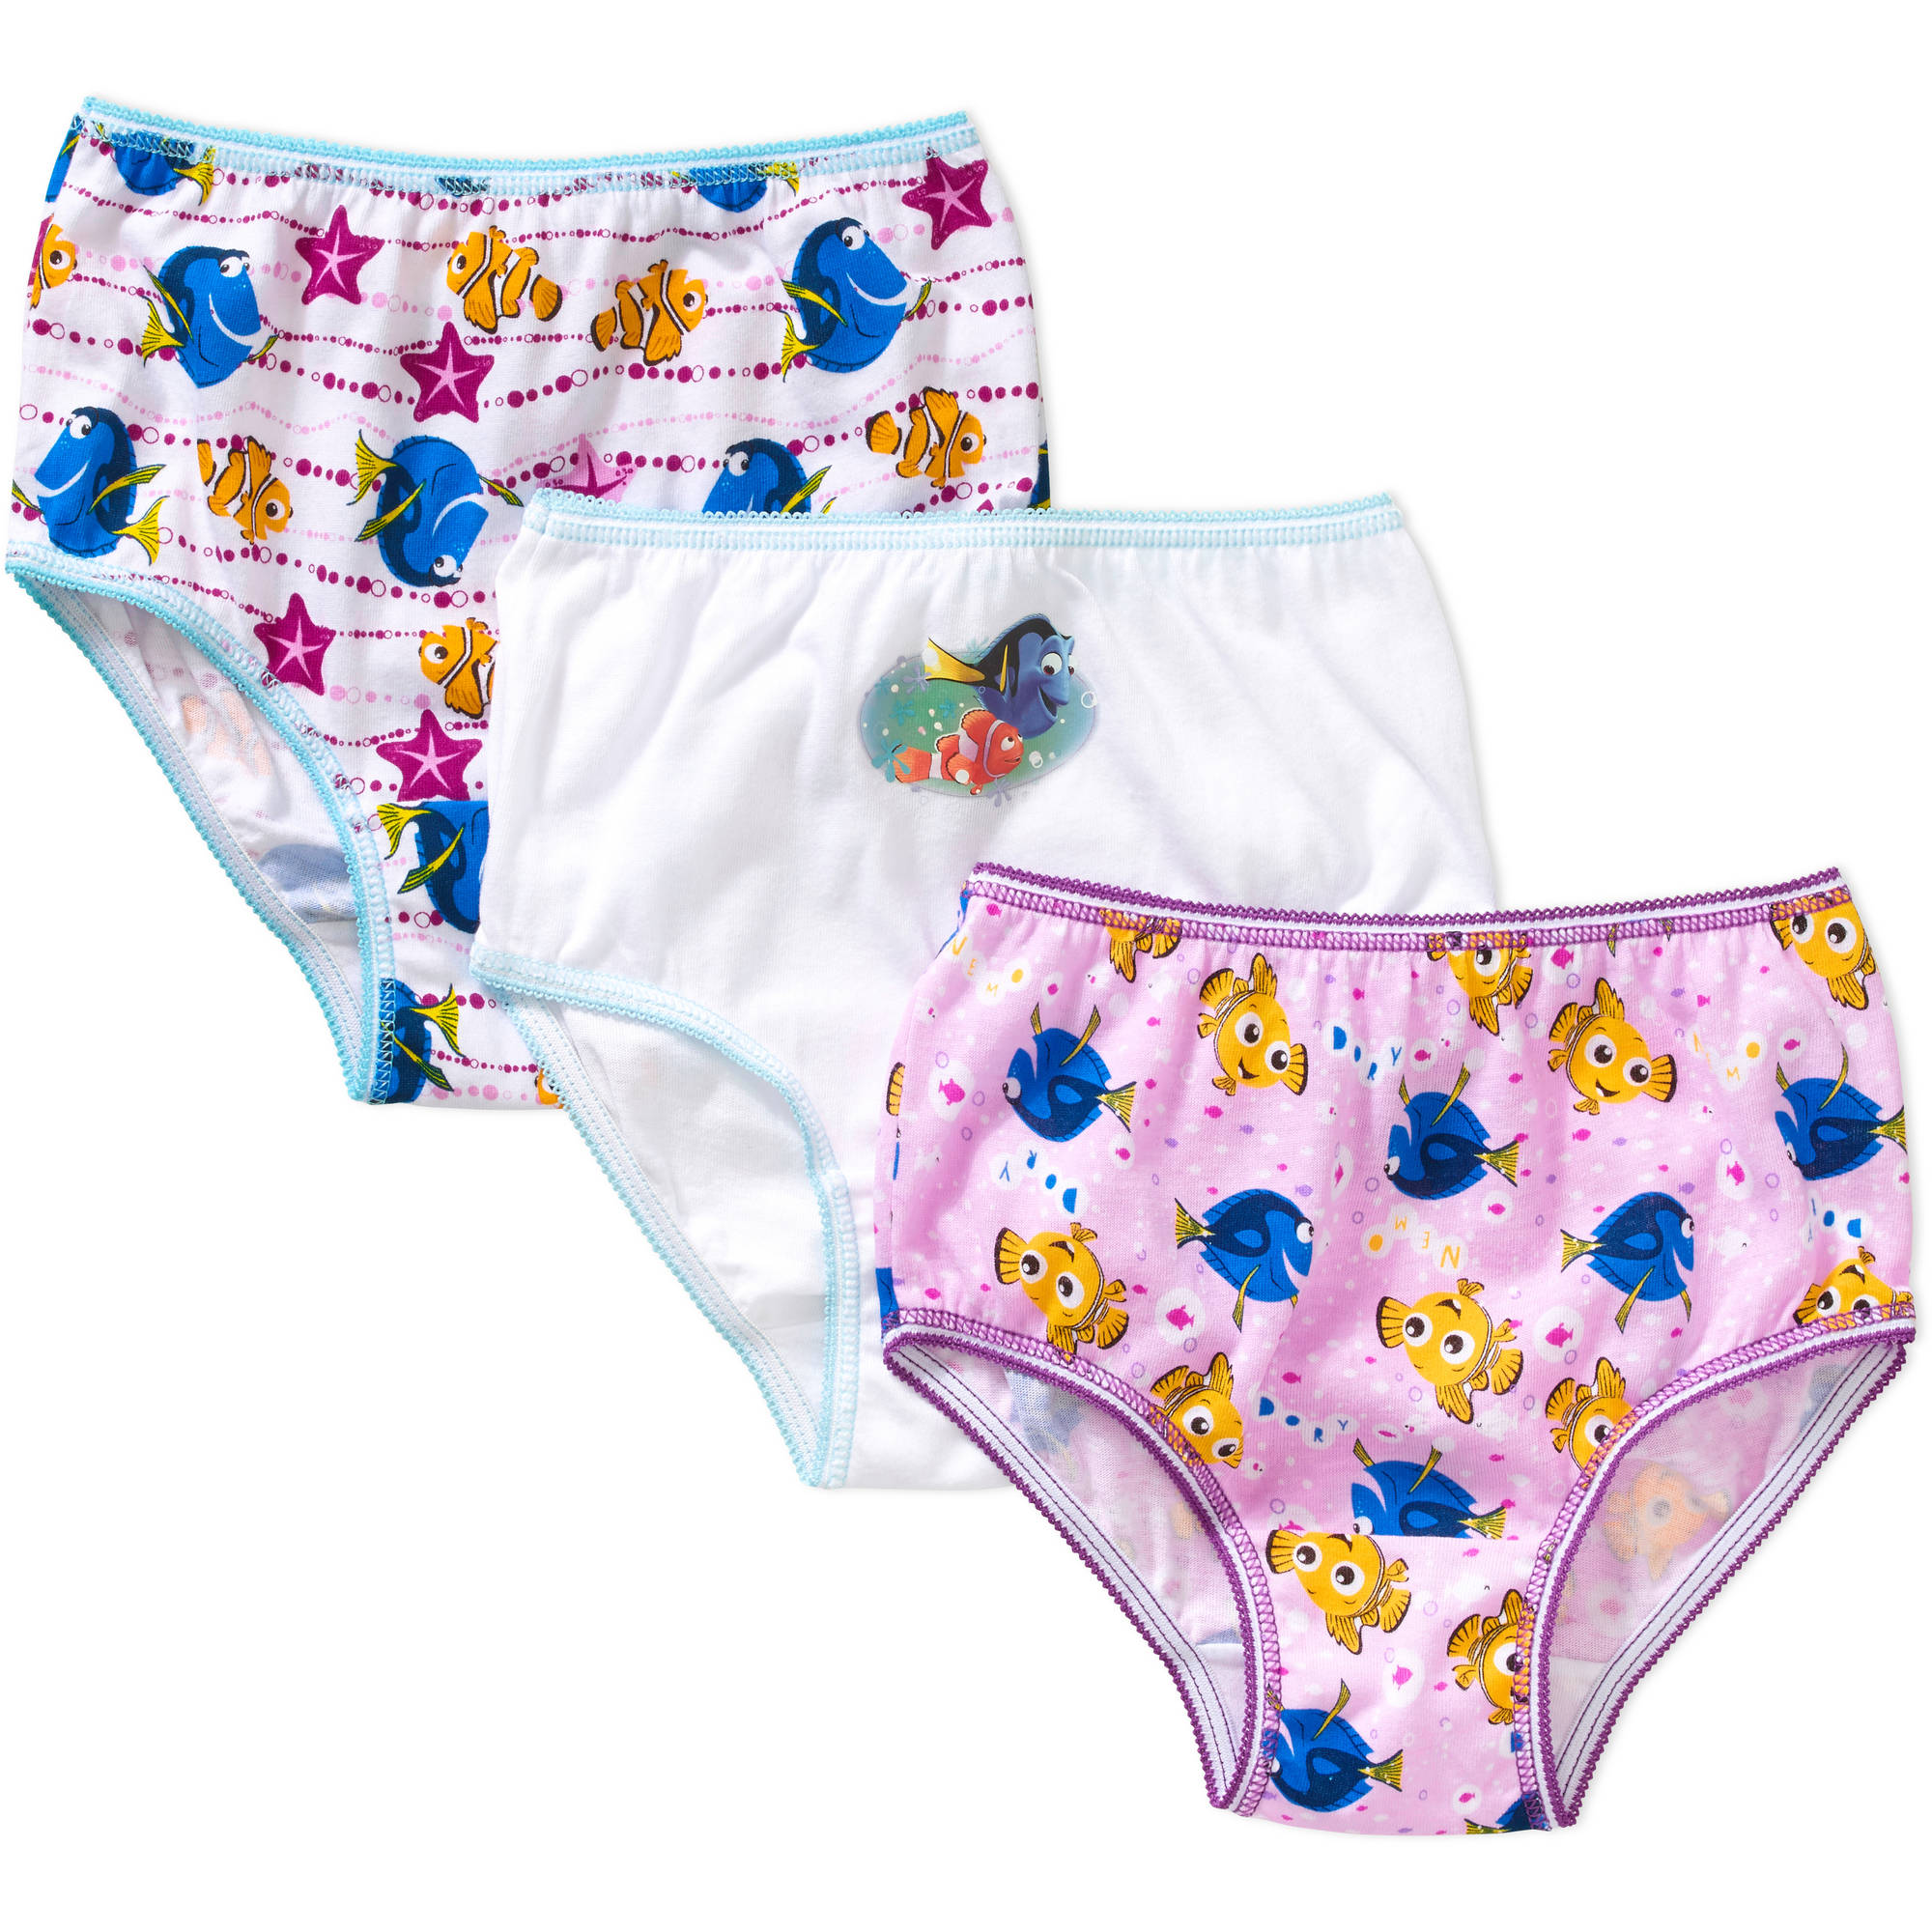 Disney Finding Nemo Dory Toddler Girls Underwear, 3-Pack